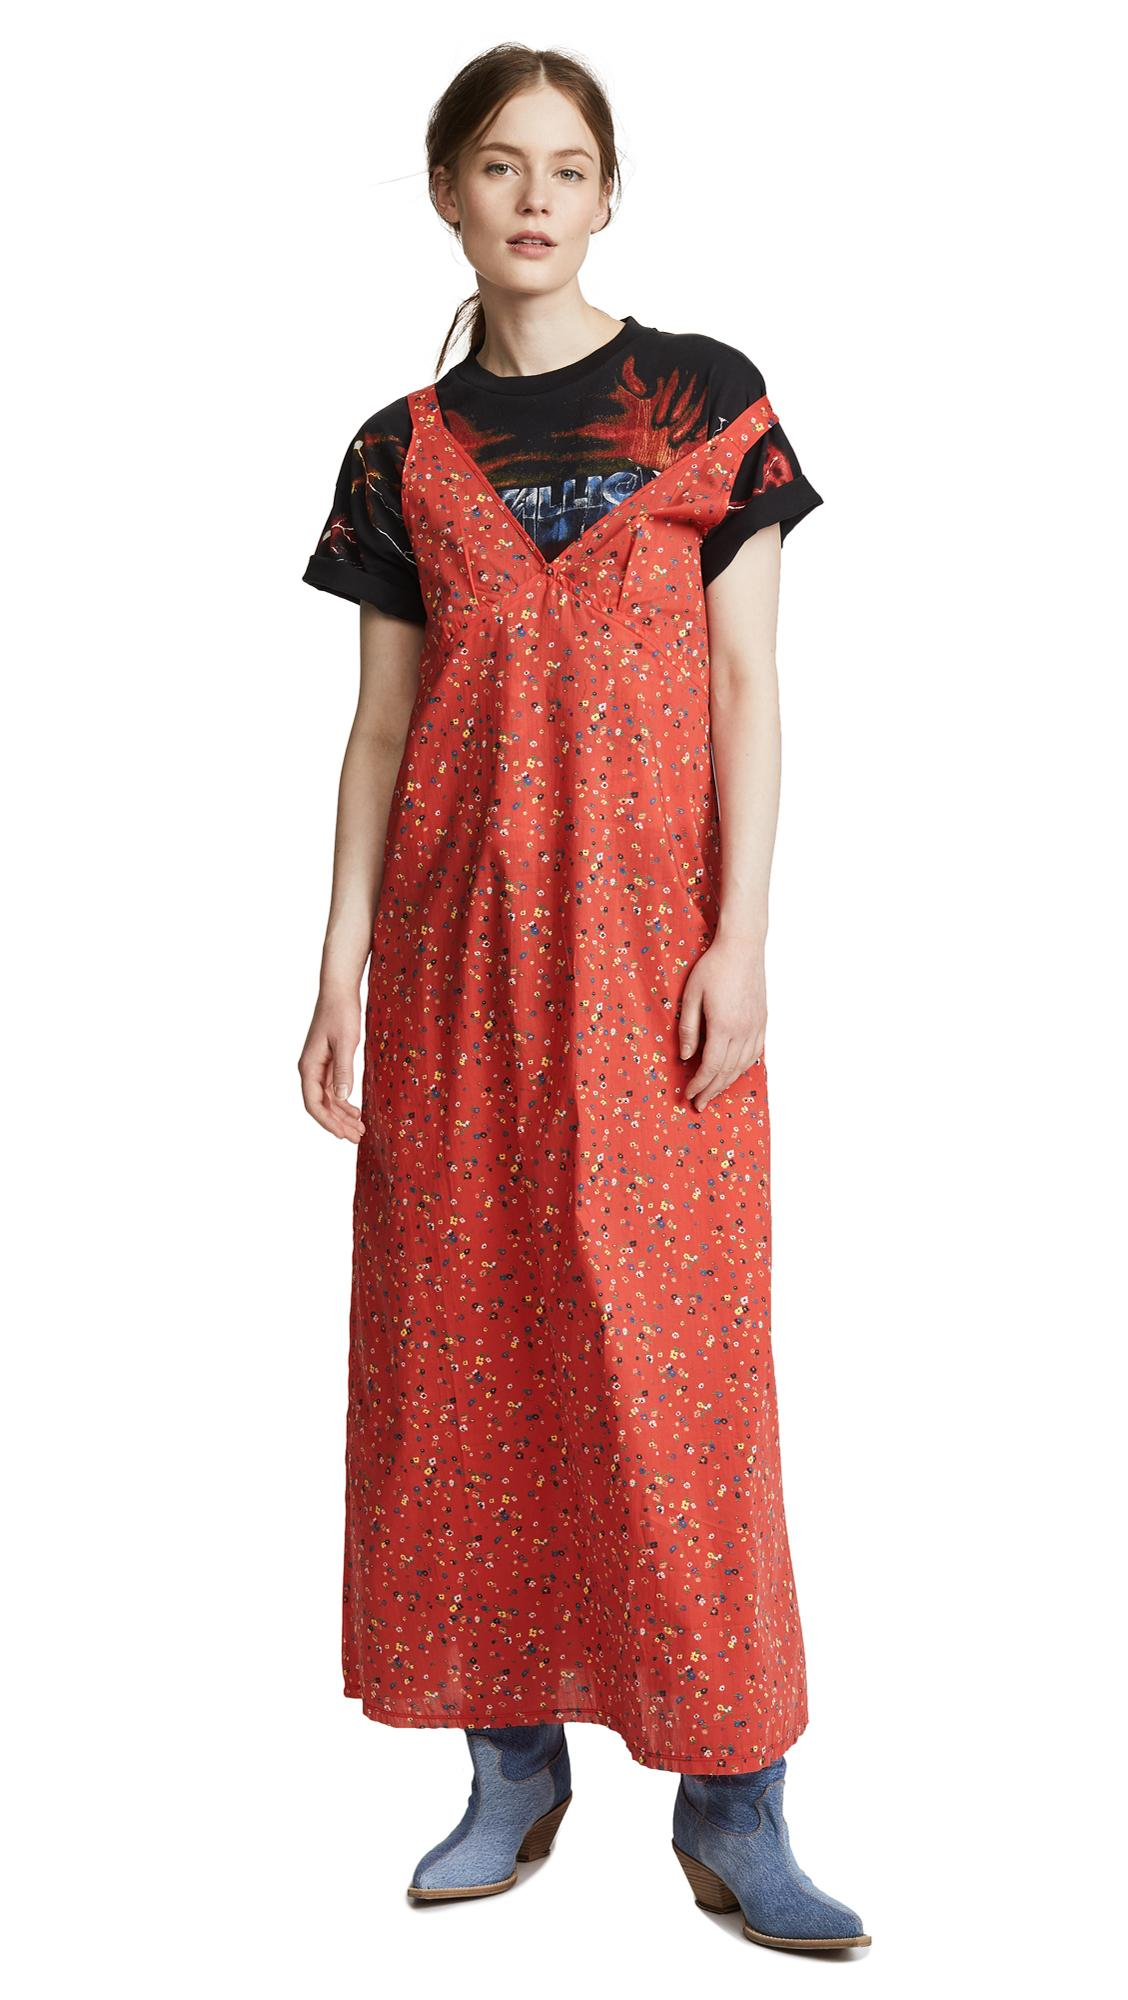 R13 Floral Print Maxi Dress In Red Floral